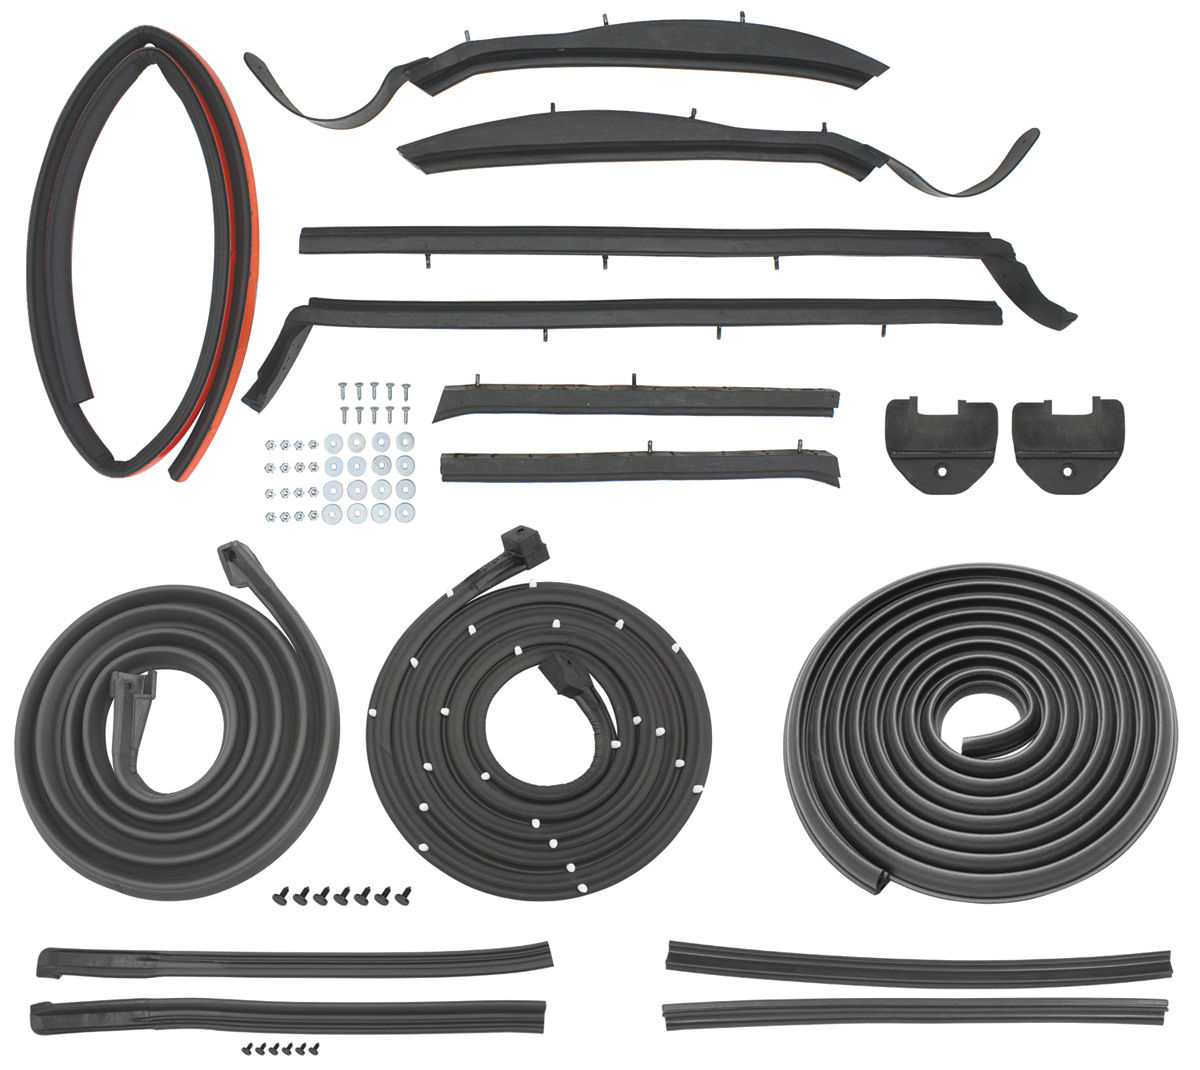 Seal Kit, 1967-68 Bonneville/Catalina/GP Stage I, Conv, 3